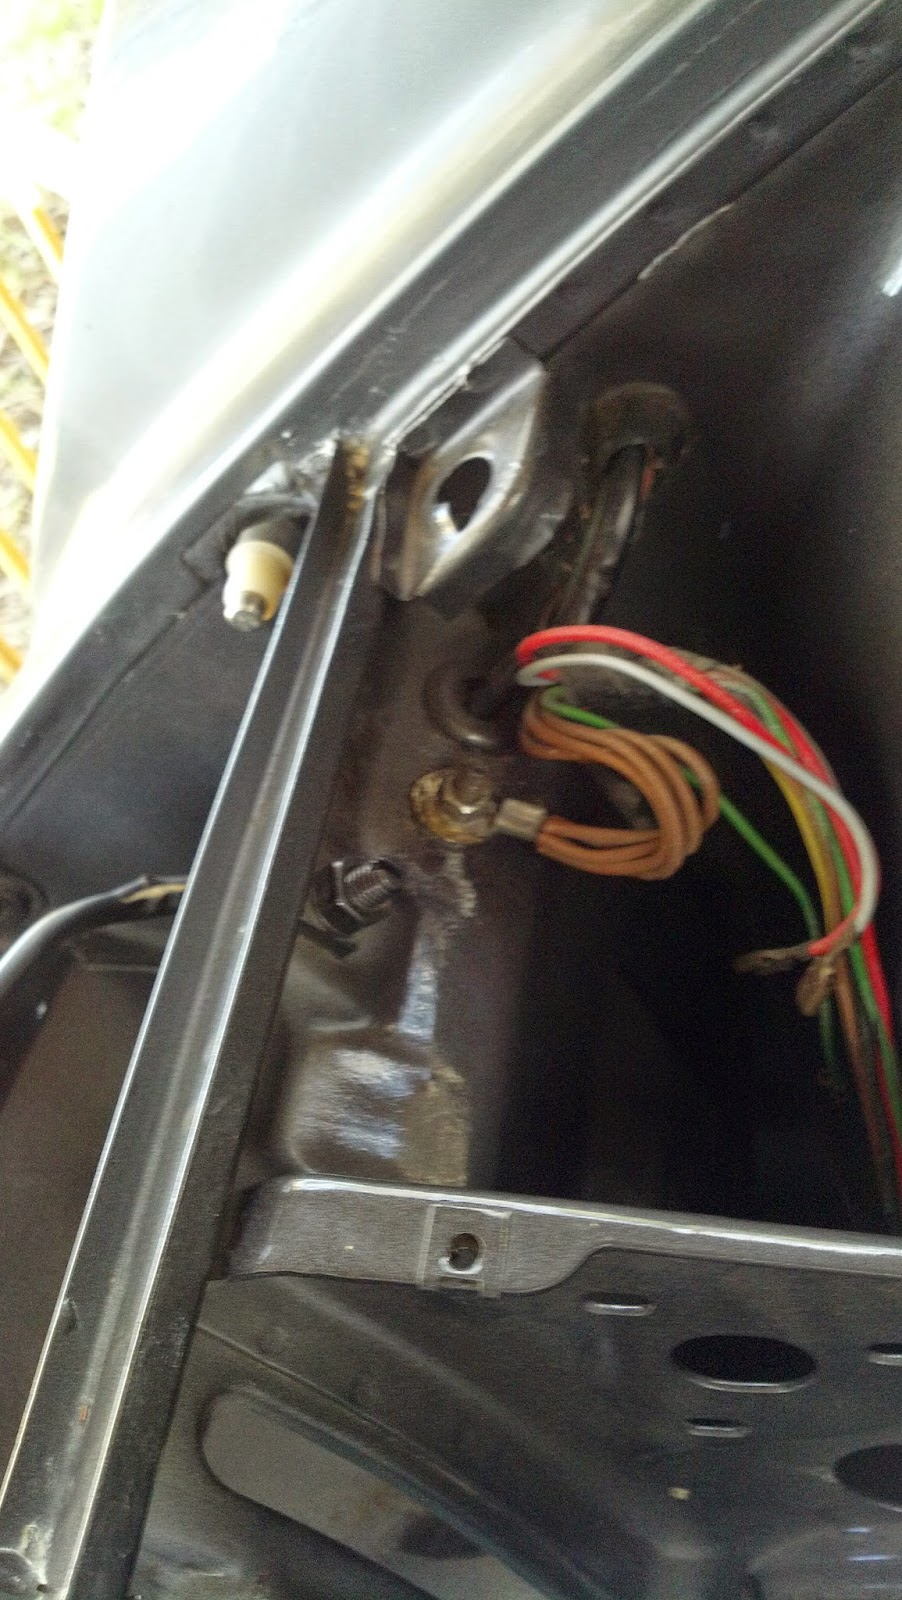 hight resolution of mount the grounding harness and the headlight motor ground wire not shown yet to the stud